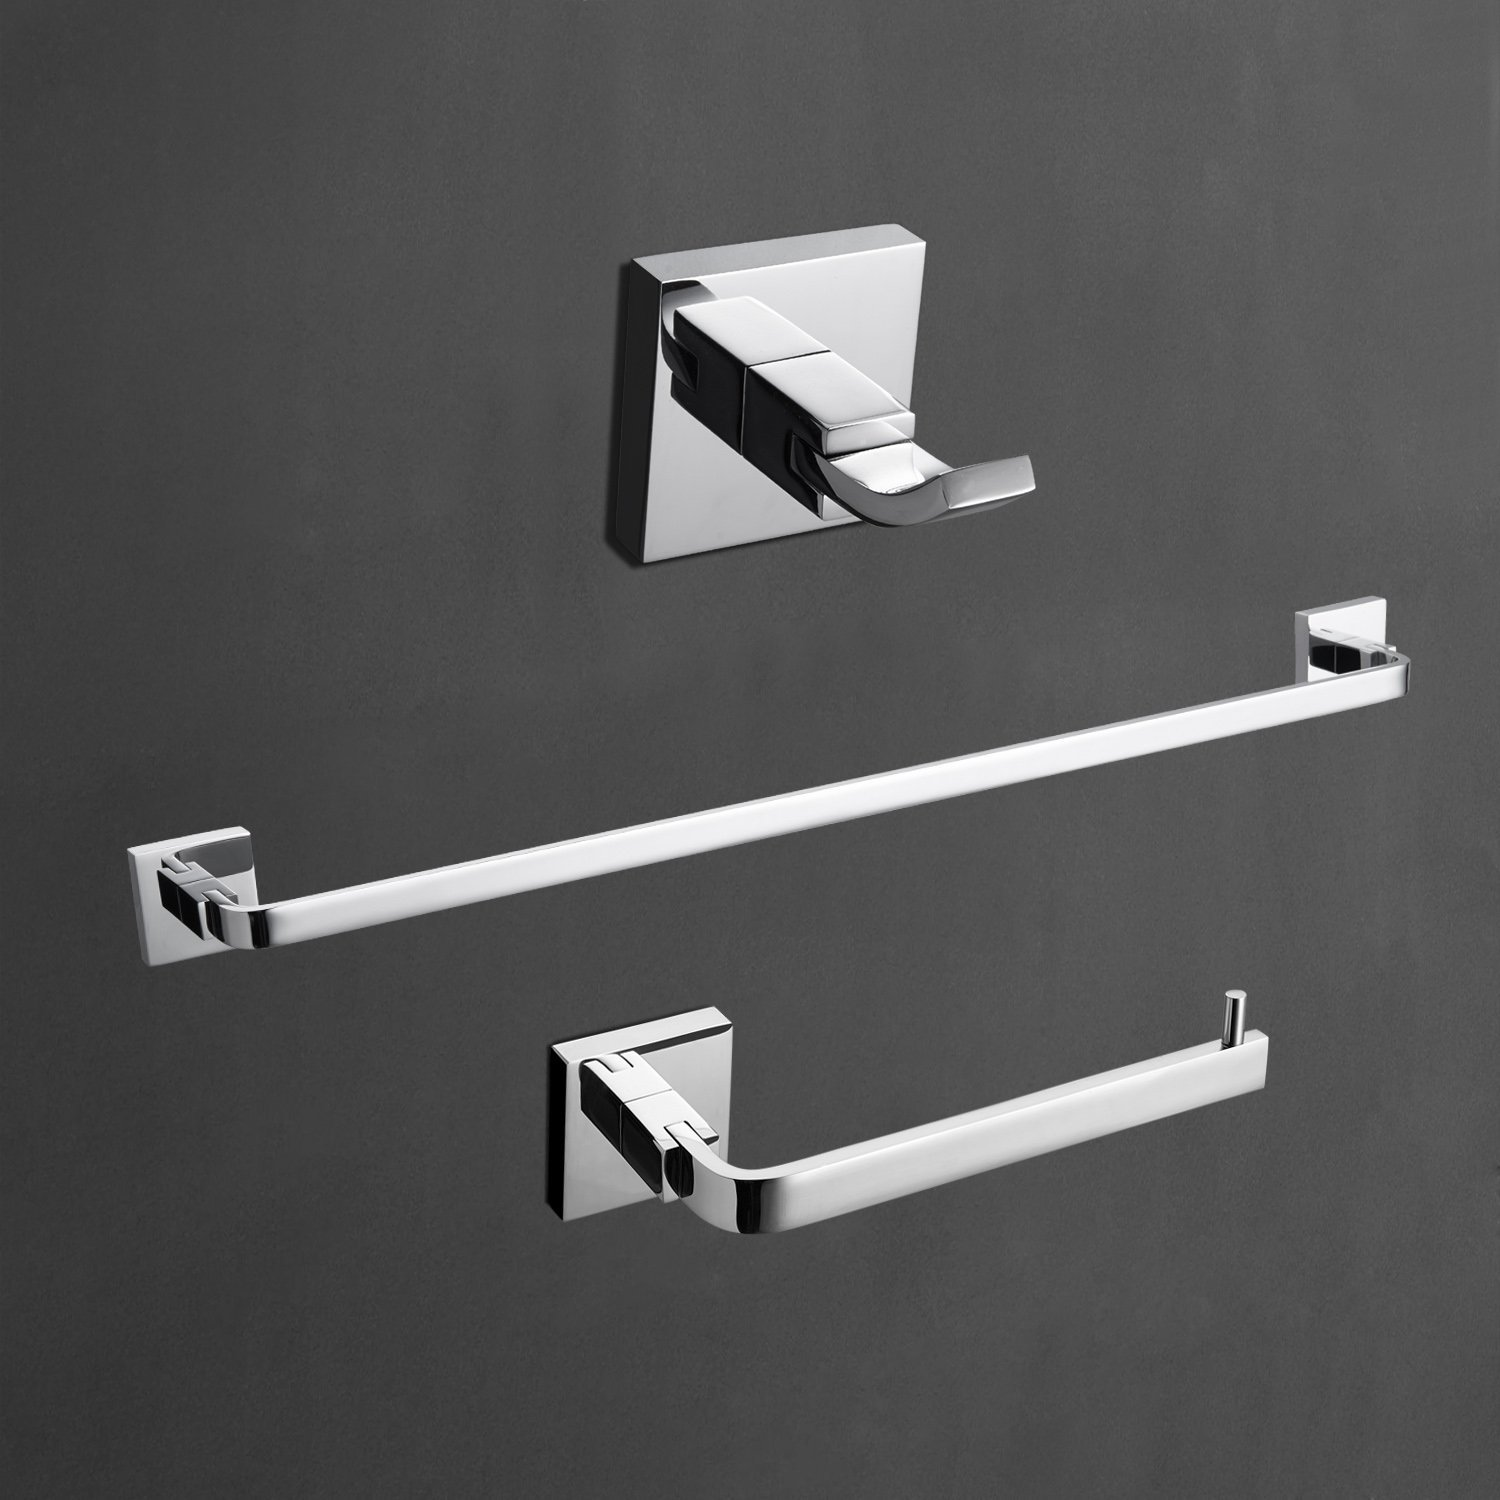 Y&L Wall Mount Solid Brass Stainless Steel Chrome Bathroom Accessory Sets Bathroom Accessories Collection, 3-piece Towel Bars Robe Hooks Racks Towel Shelf Bath Shower Set Kitchen Towel Racks